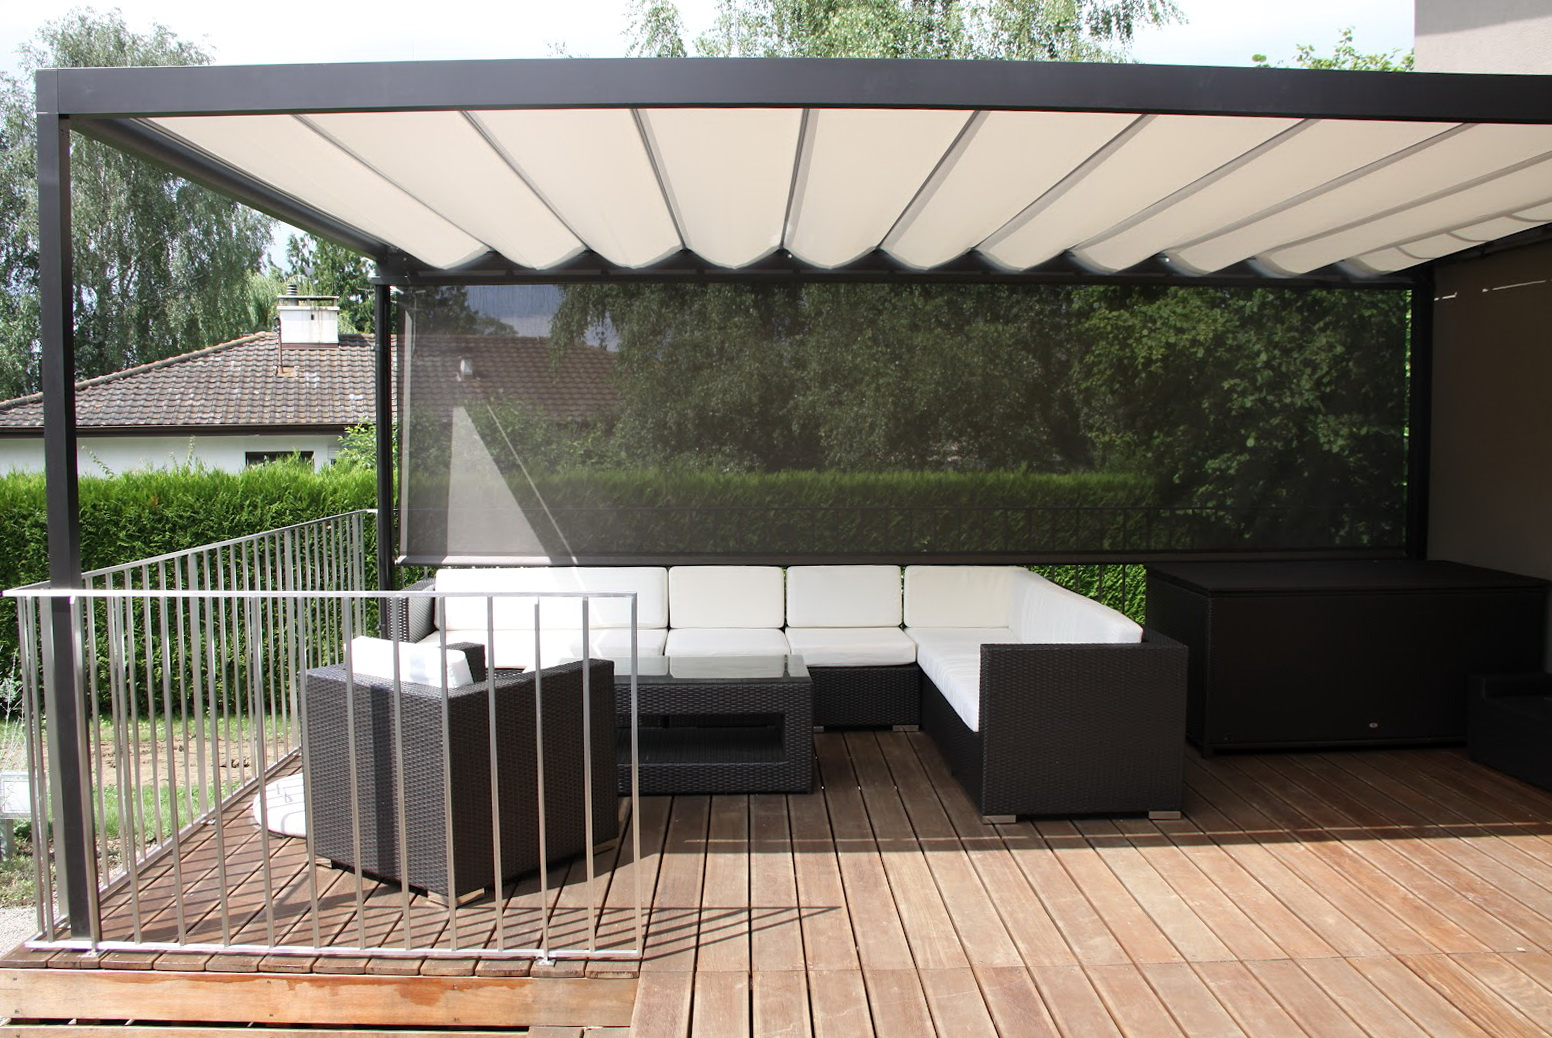 Sun shade for deck home design ideas - Shade ideas for a deck ...